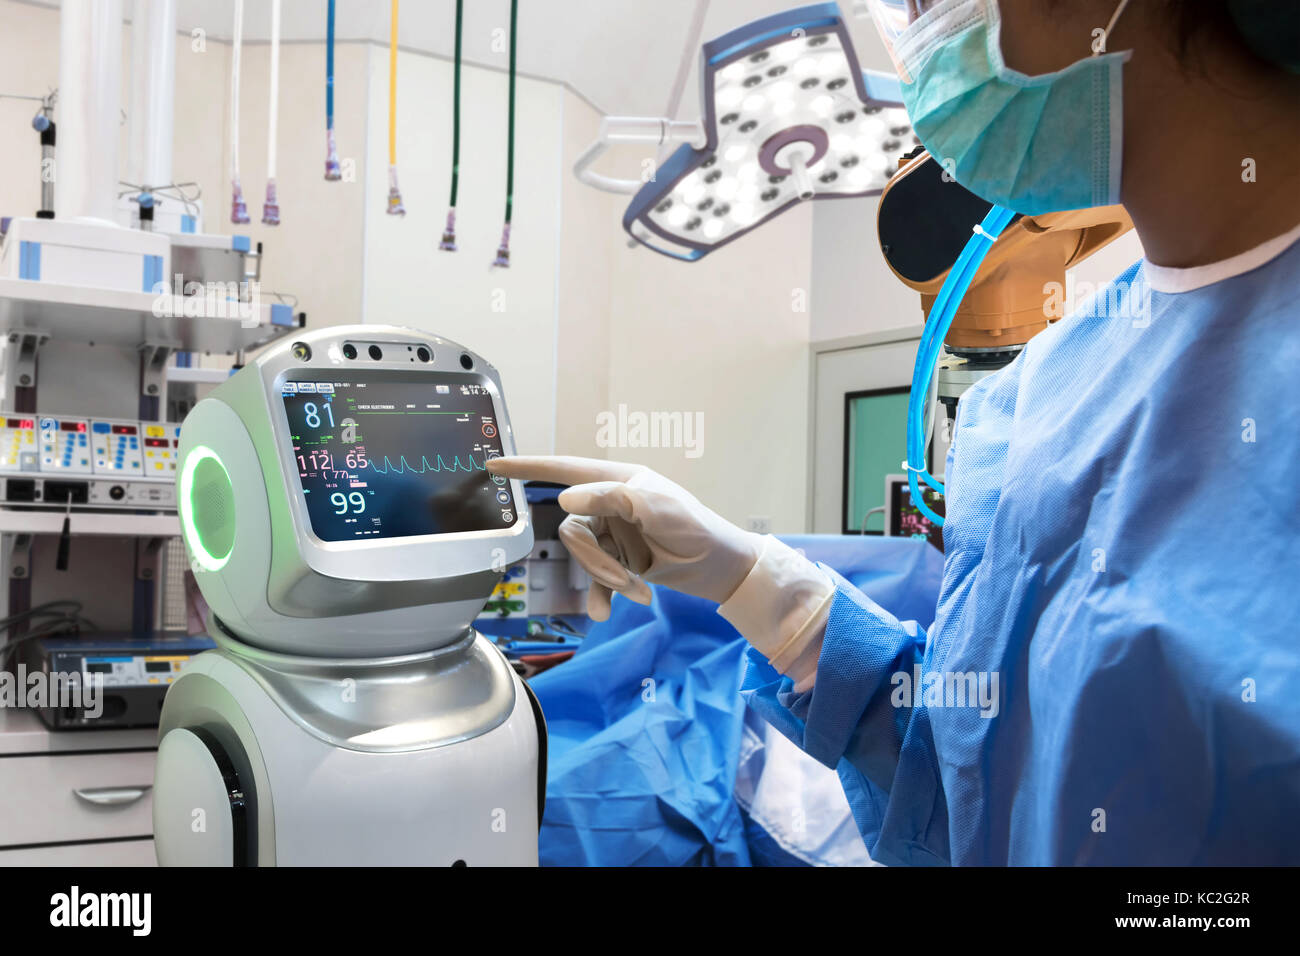 Robotic Advisor Service Technology In Healthcare Smart Hospital Artificial Intelligence Concept Surgury Doctors In Operating Room And Robot Display